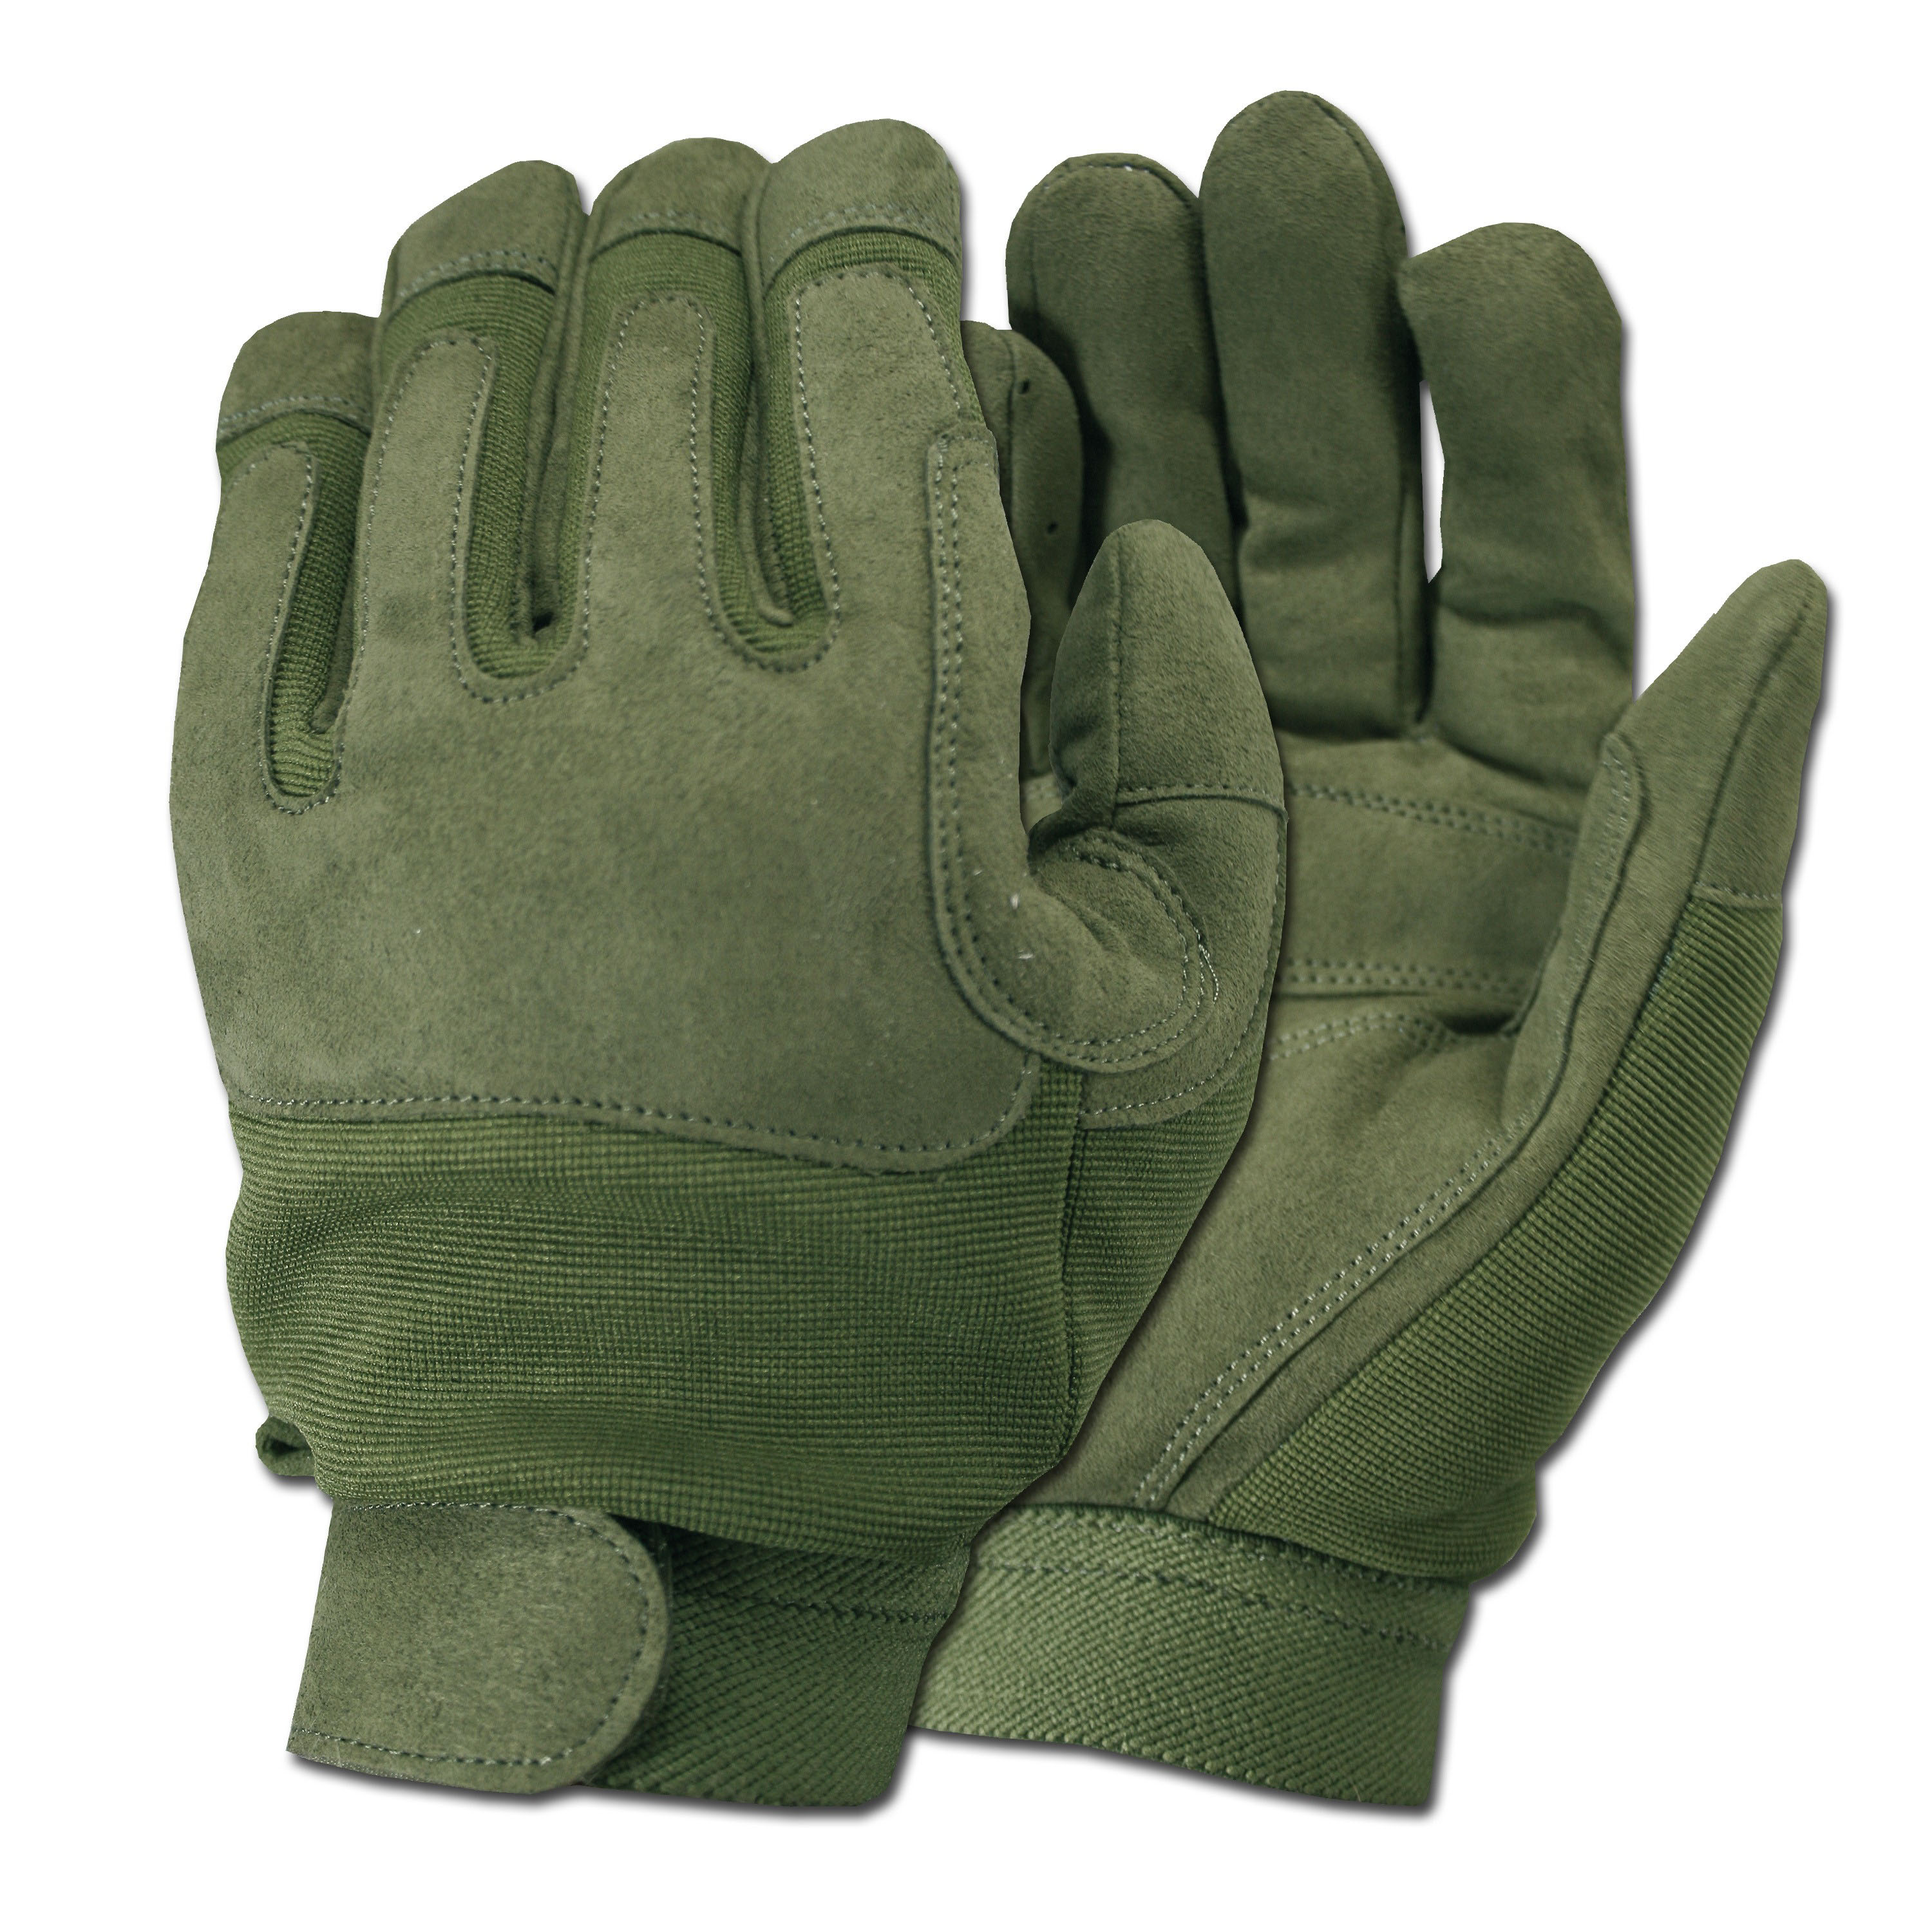 Army Gloves olive green